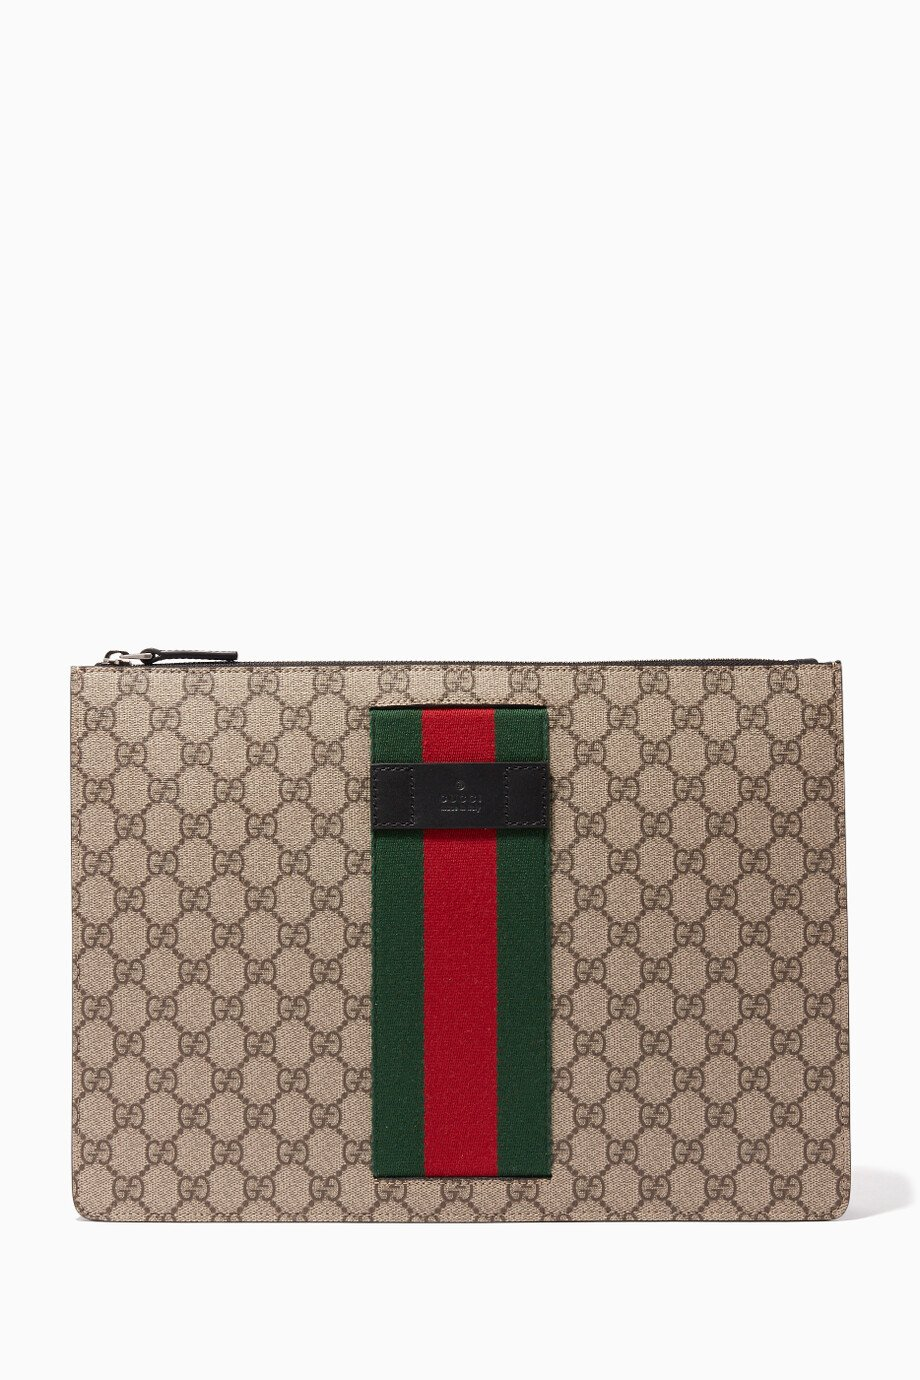 ecbb5a898fe Shop Gucci Neutral Beige   Ebony GG Supreme Zip Pouch for Men ...